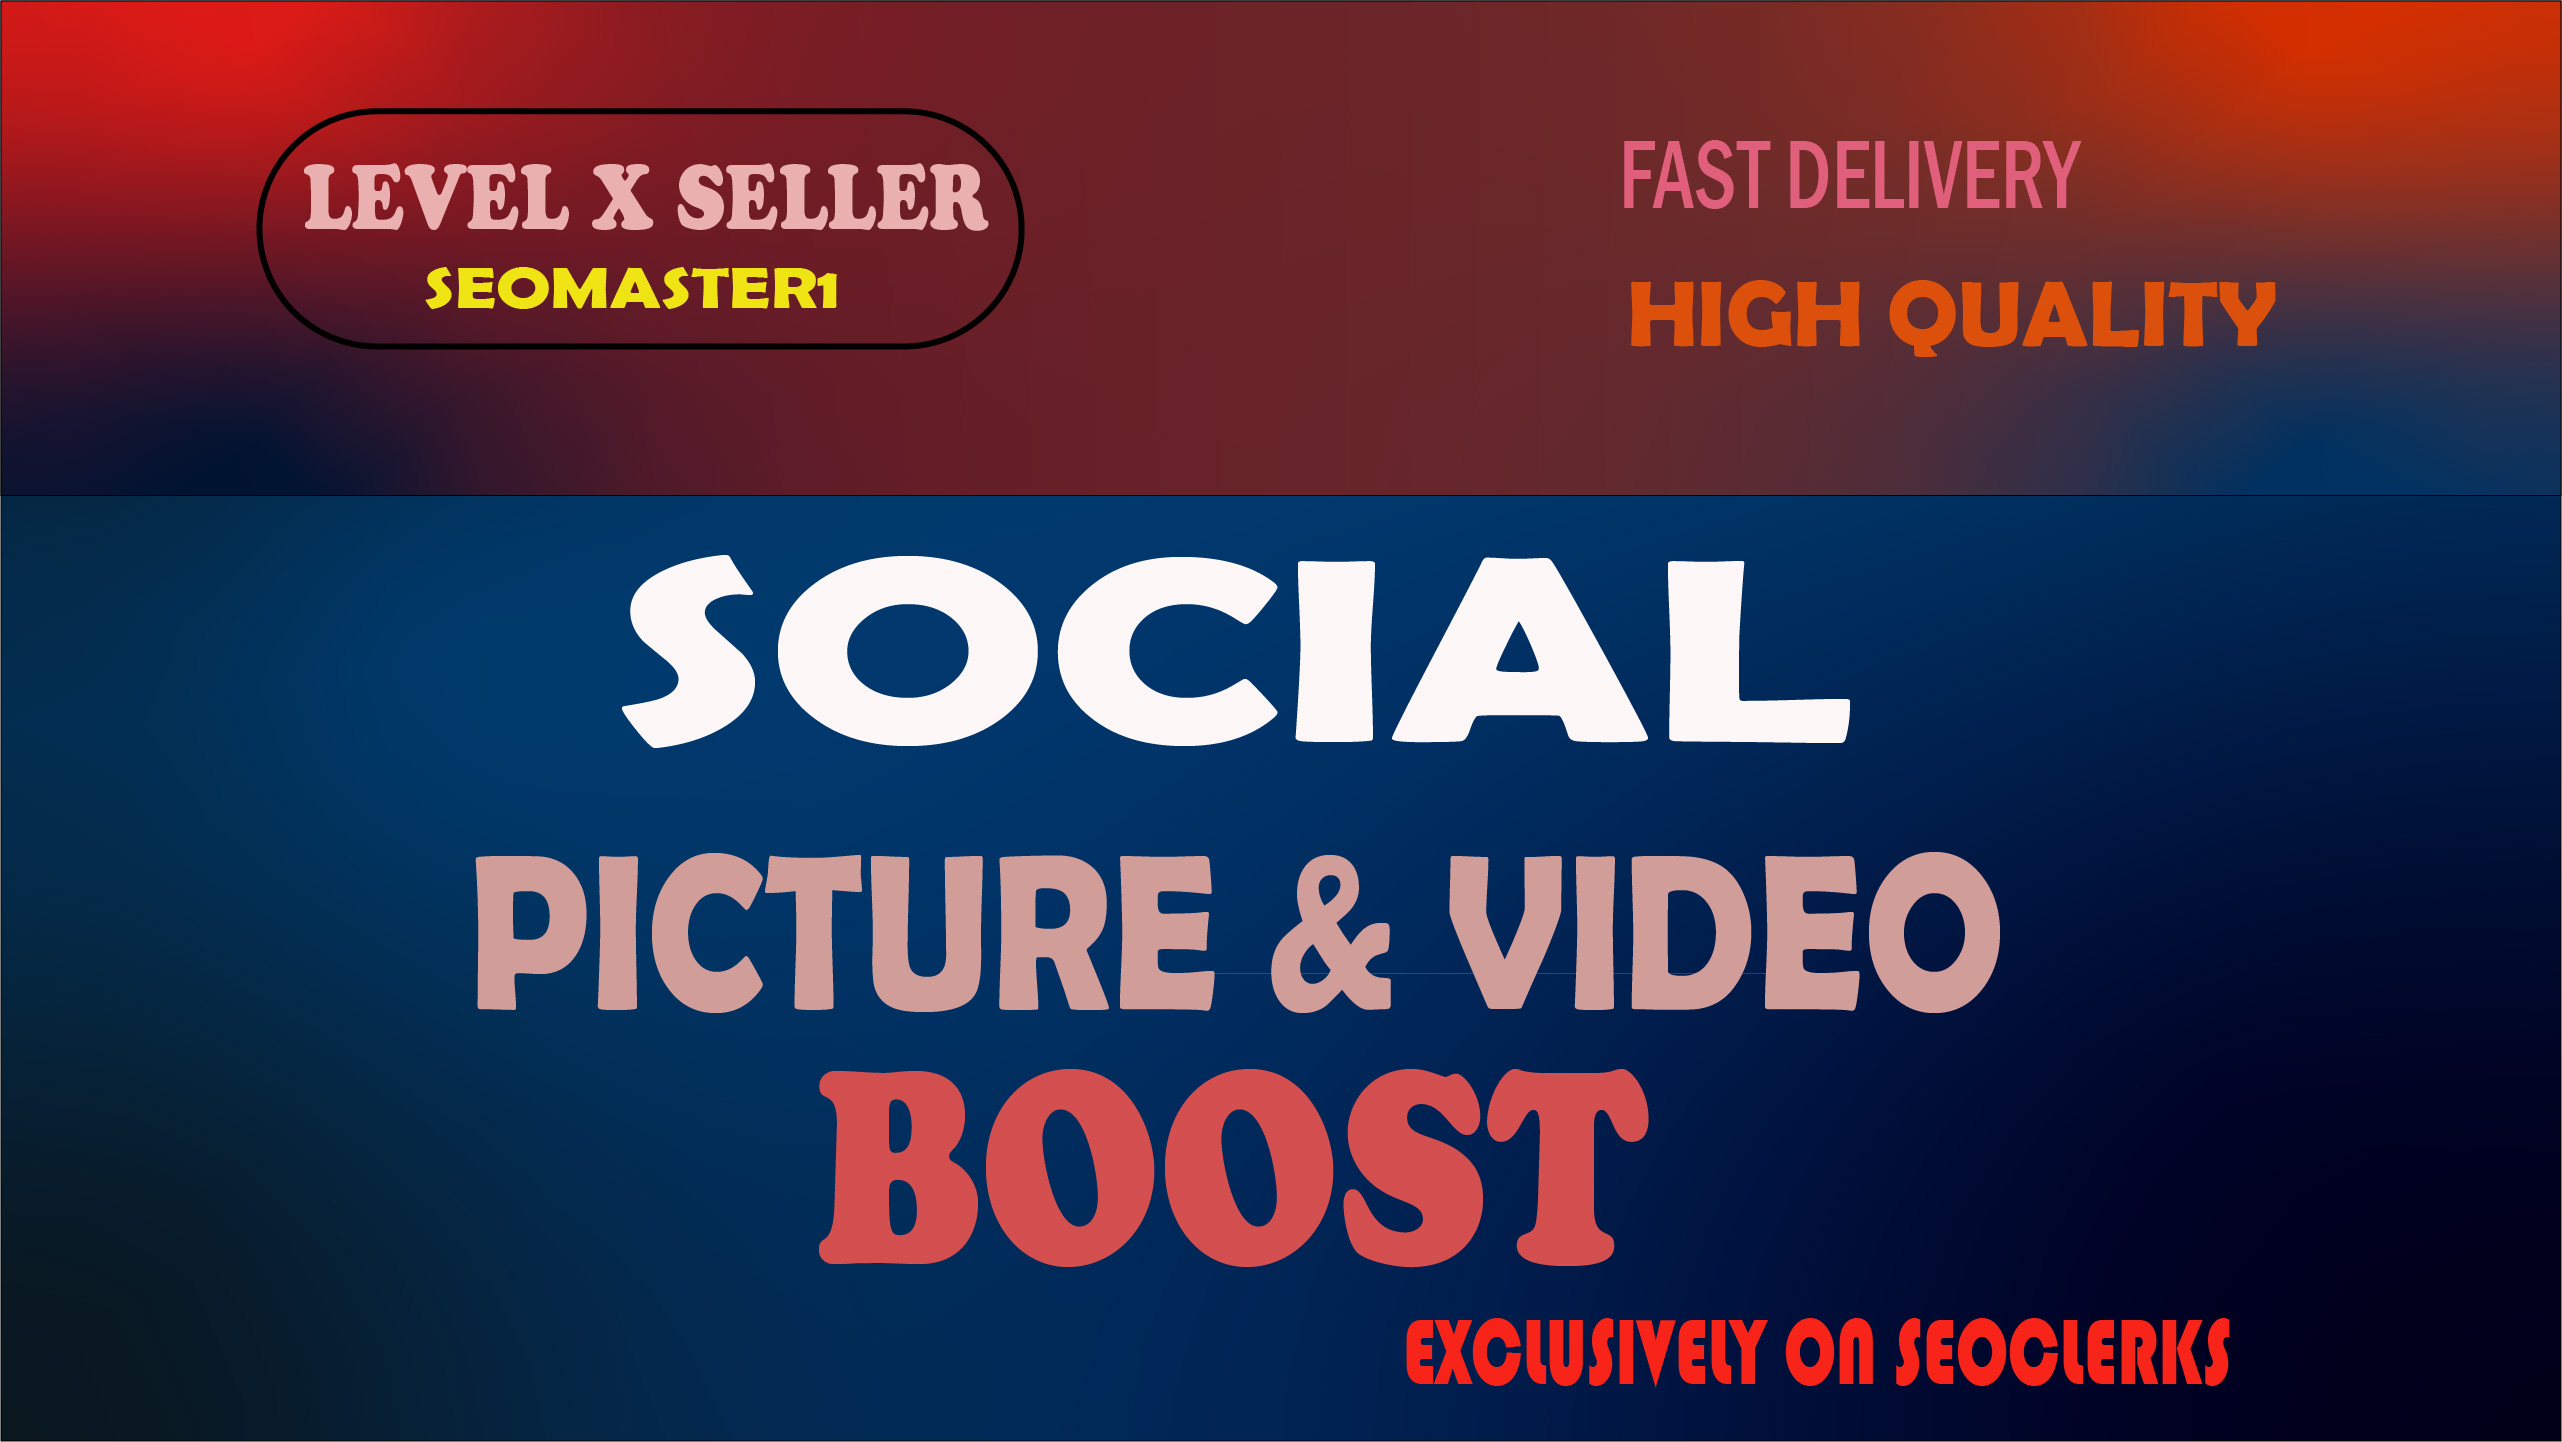 HQ social media promotion with real audience